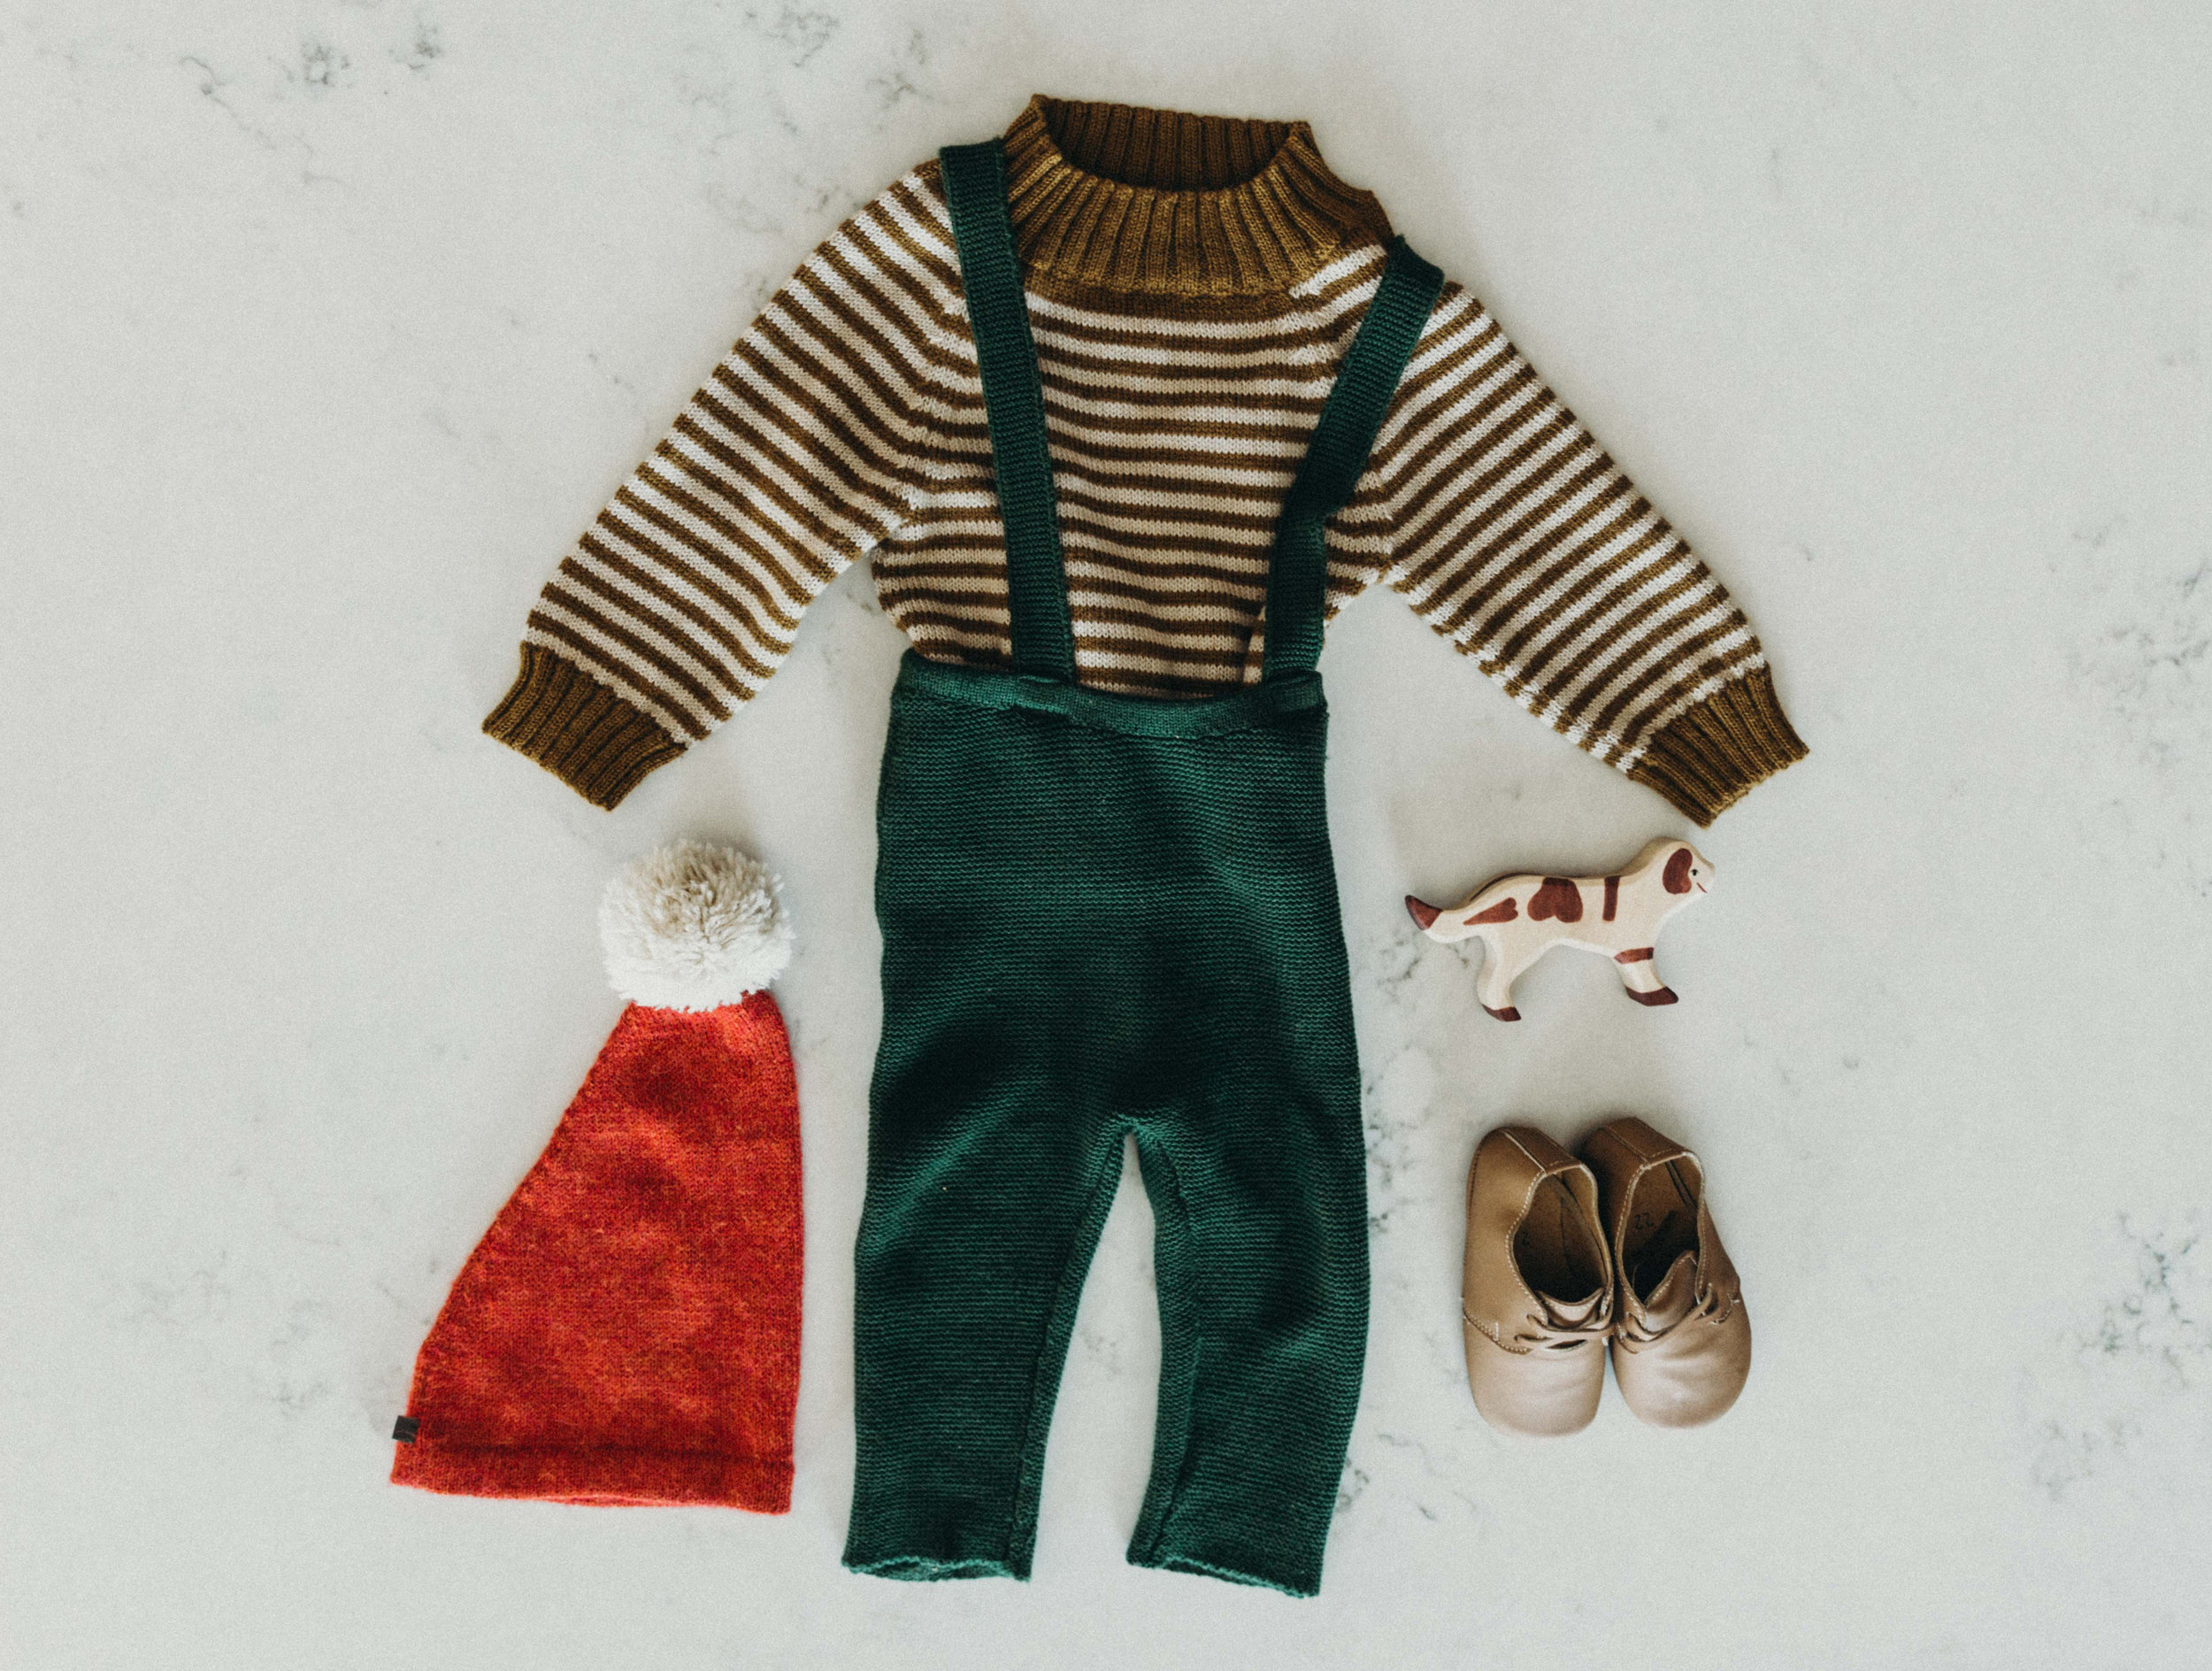 Ayrton's Christmas Eve duds: OeufNYC Santa hat, Fin & Vince honey stripe alpaca sweater, Fin & Vince pine suspender pants, The Humble Soles Rama soft sole shoe (note: you can use code CATHLINS10 for 10% off at The Humble Soles)